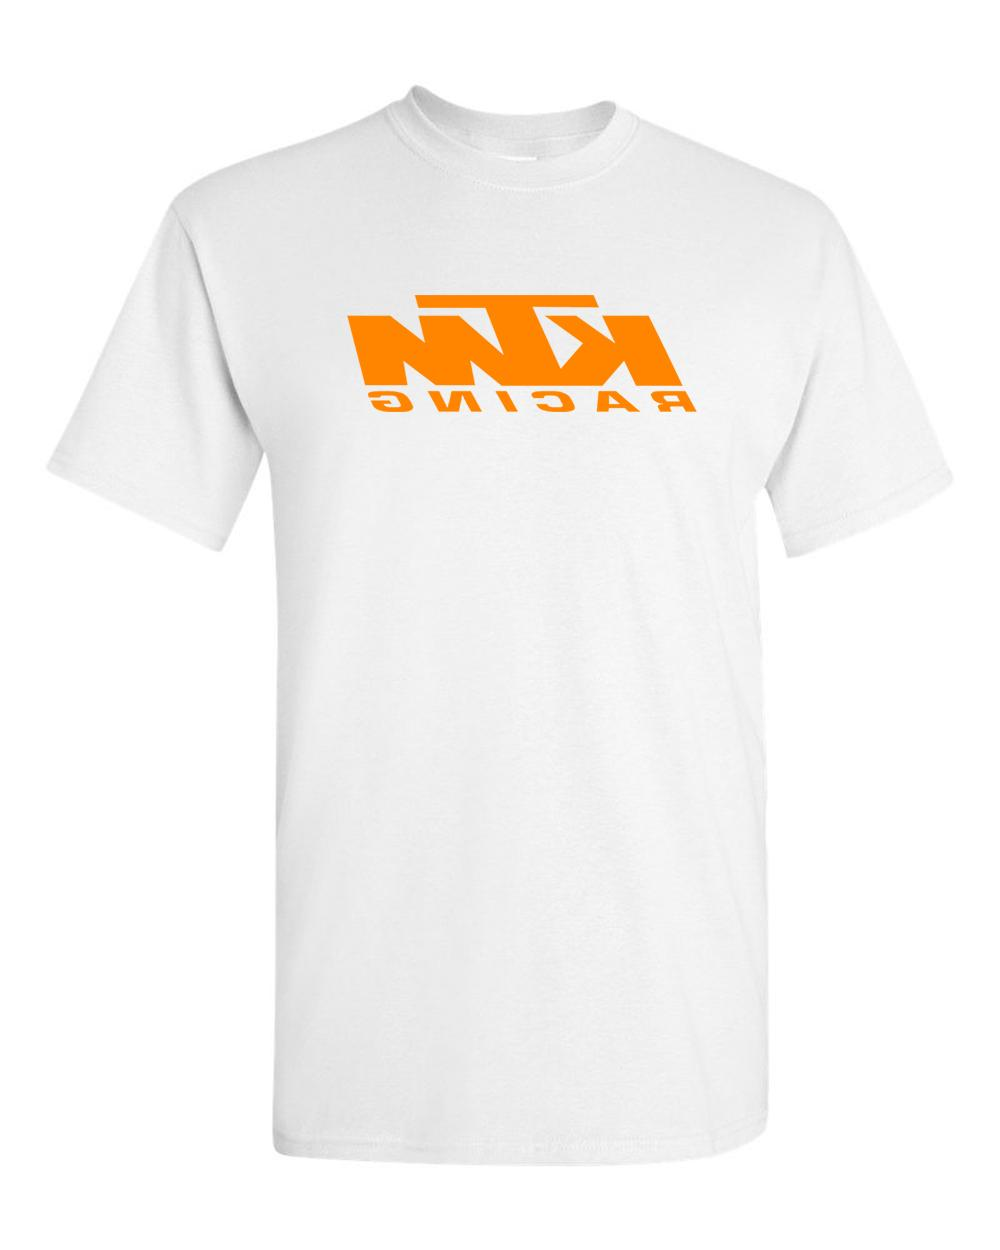 KTM Motocross SX Logo T-Shirt All Colors